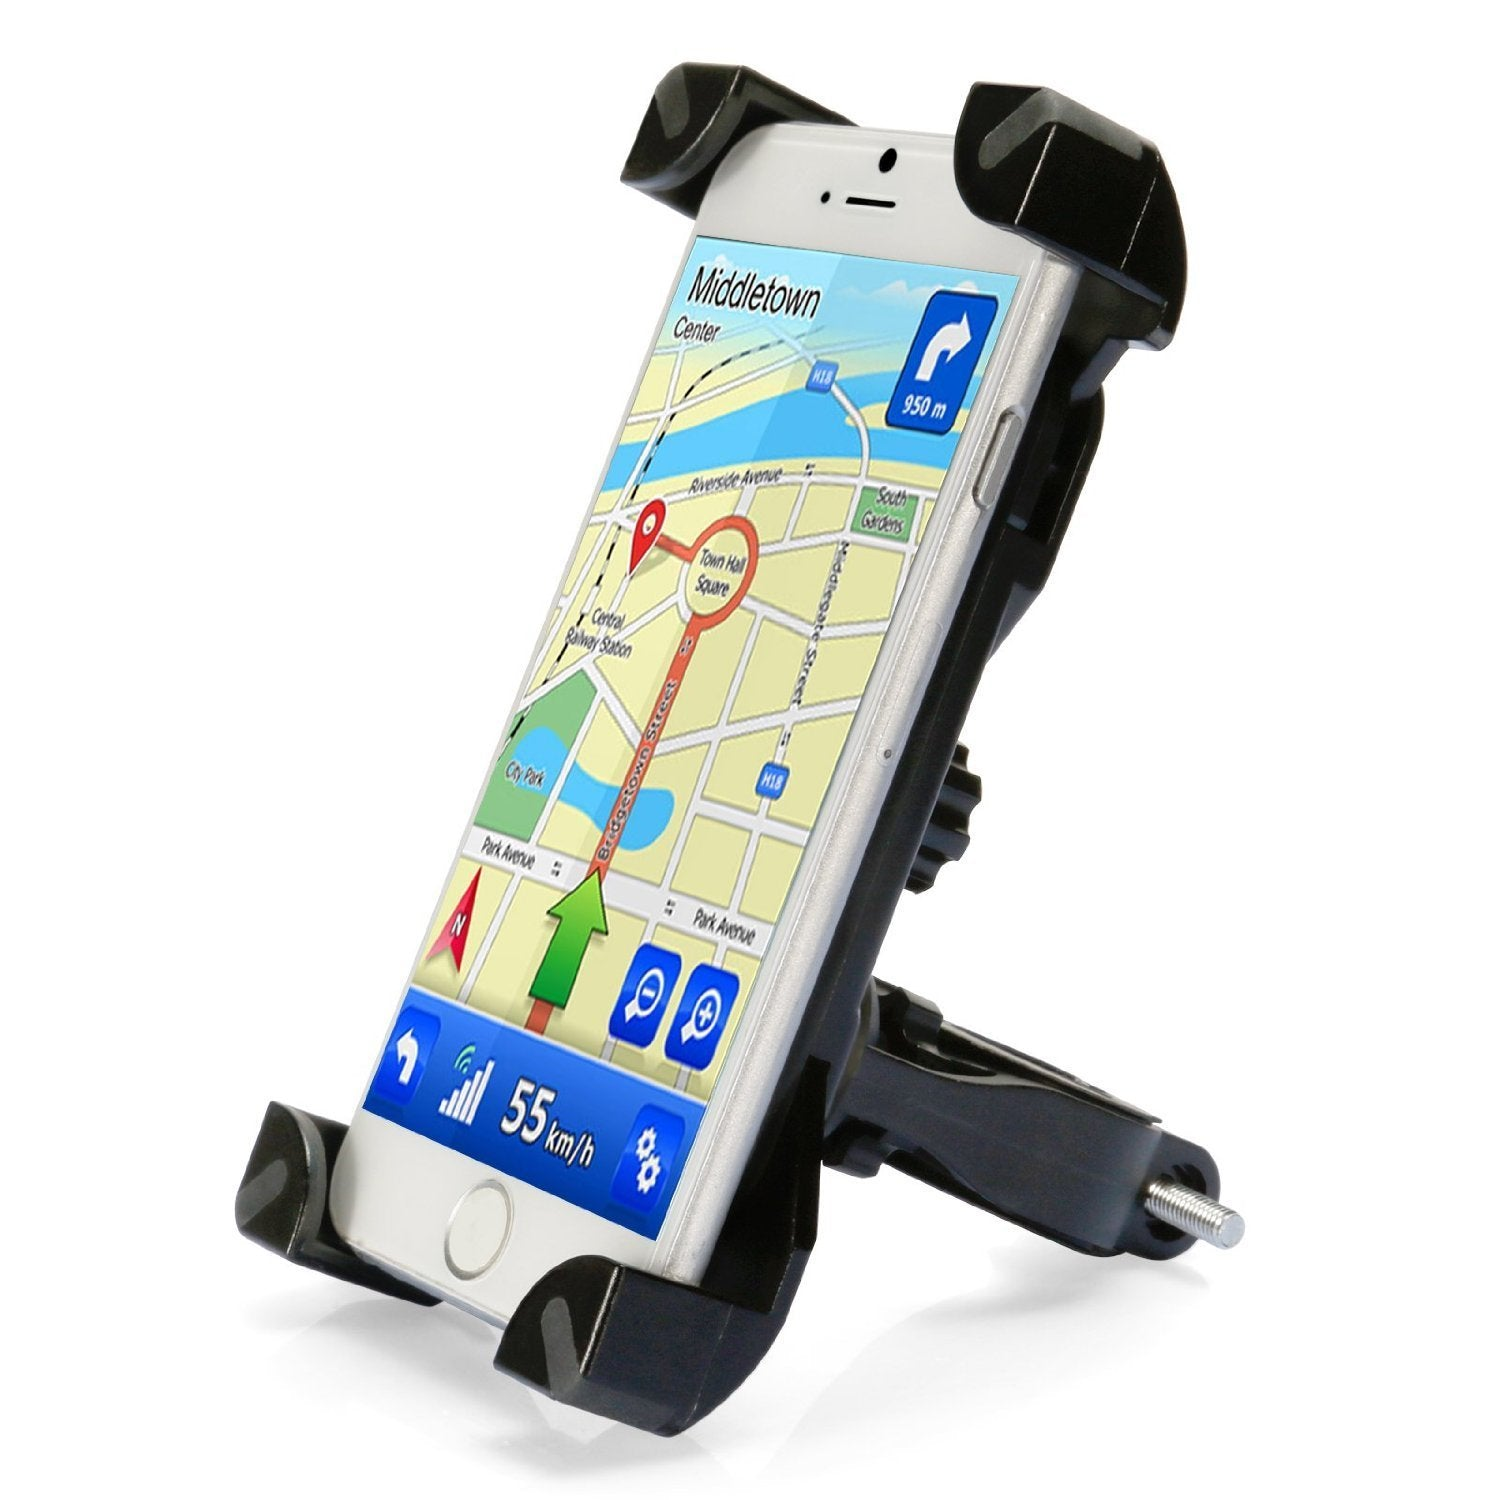 Universal CH-01 Bike Mount Bicycle Phone Holder Handlebar Phone Bracket for 4 Inch to 6 Inch Smartphones - BLACK